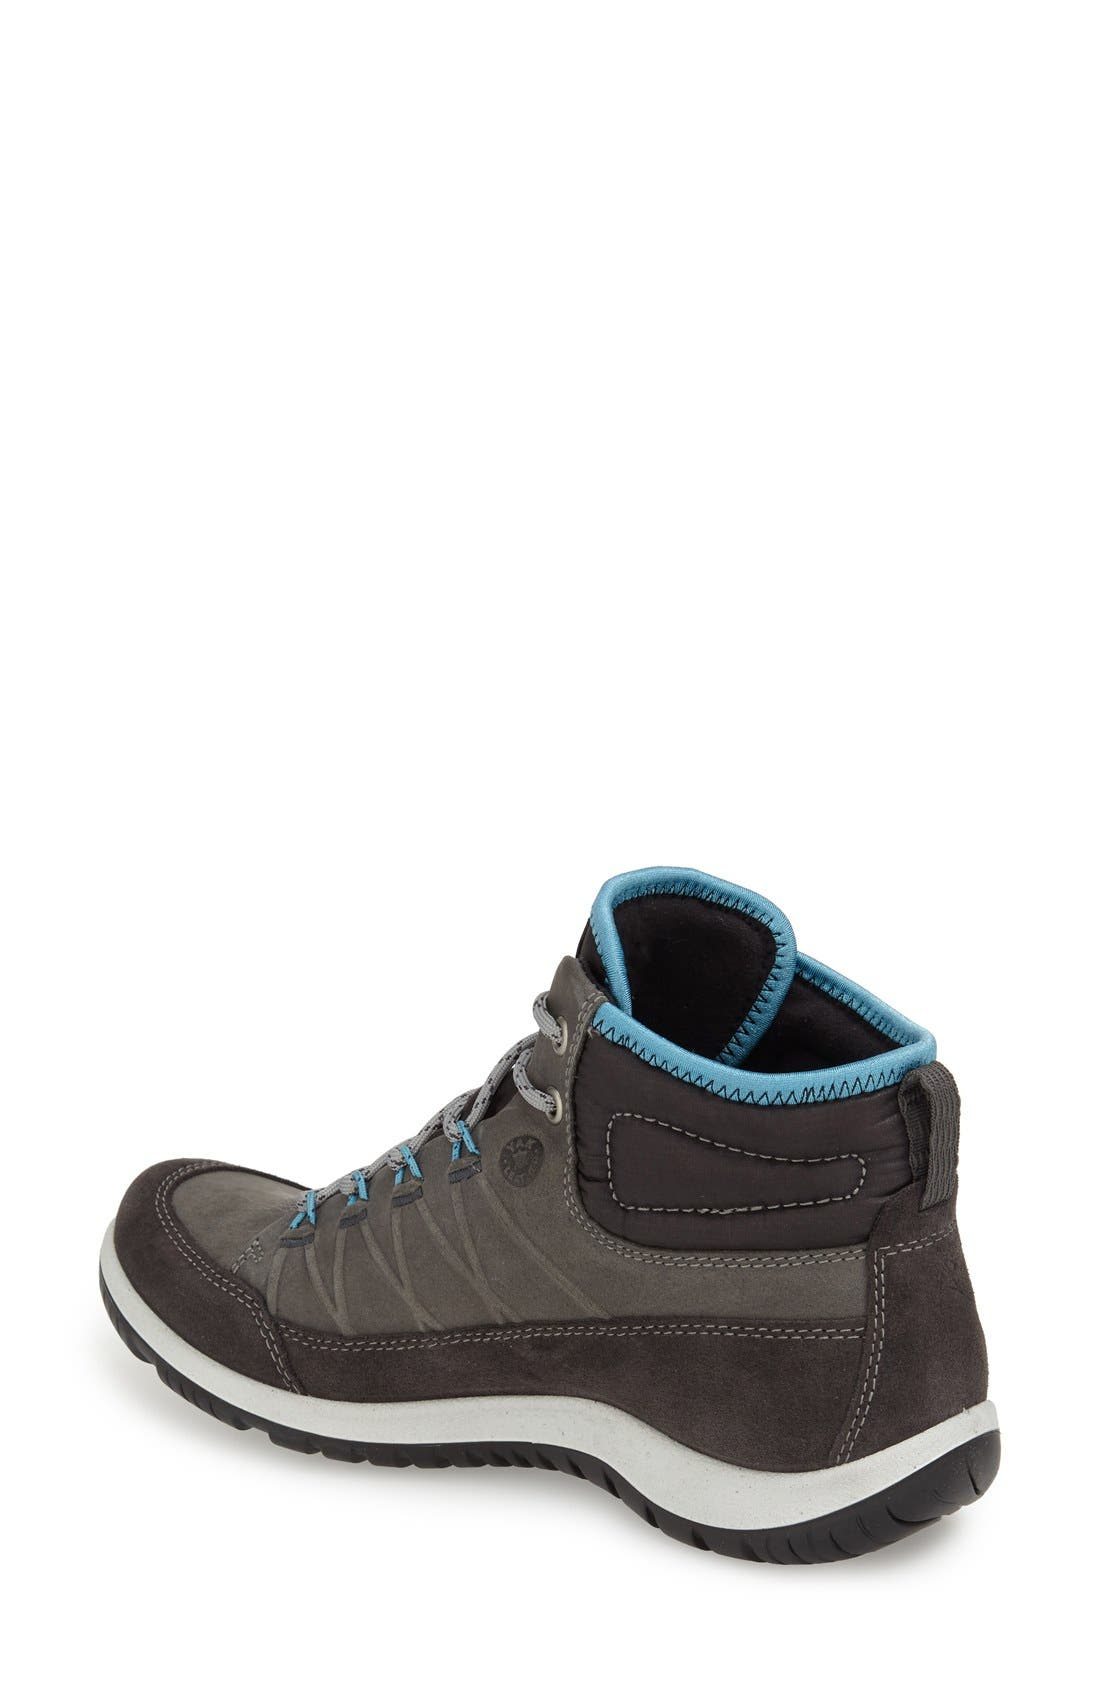 ECCO,                             'Aspina GTX' Waterproof High Top Shoe,                             Alternate thumbnail 3, color,                             MOONLESS OILED SUEDE